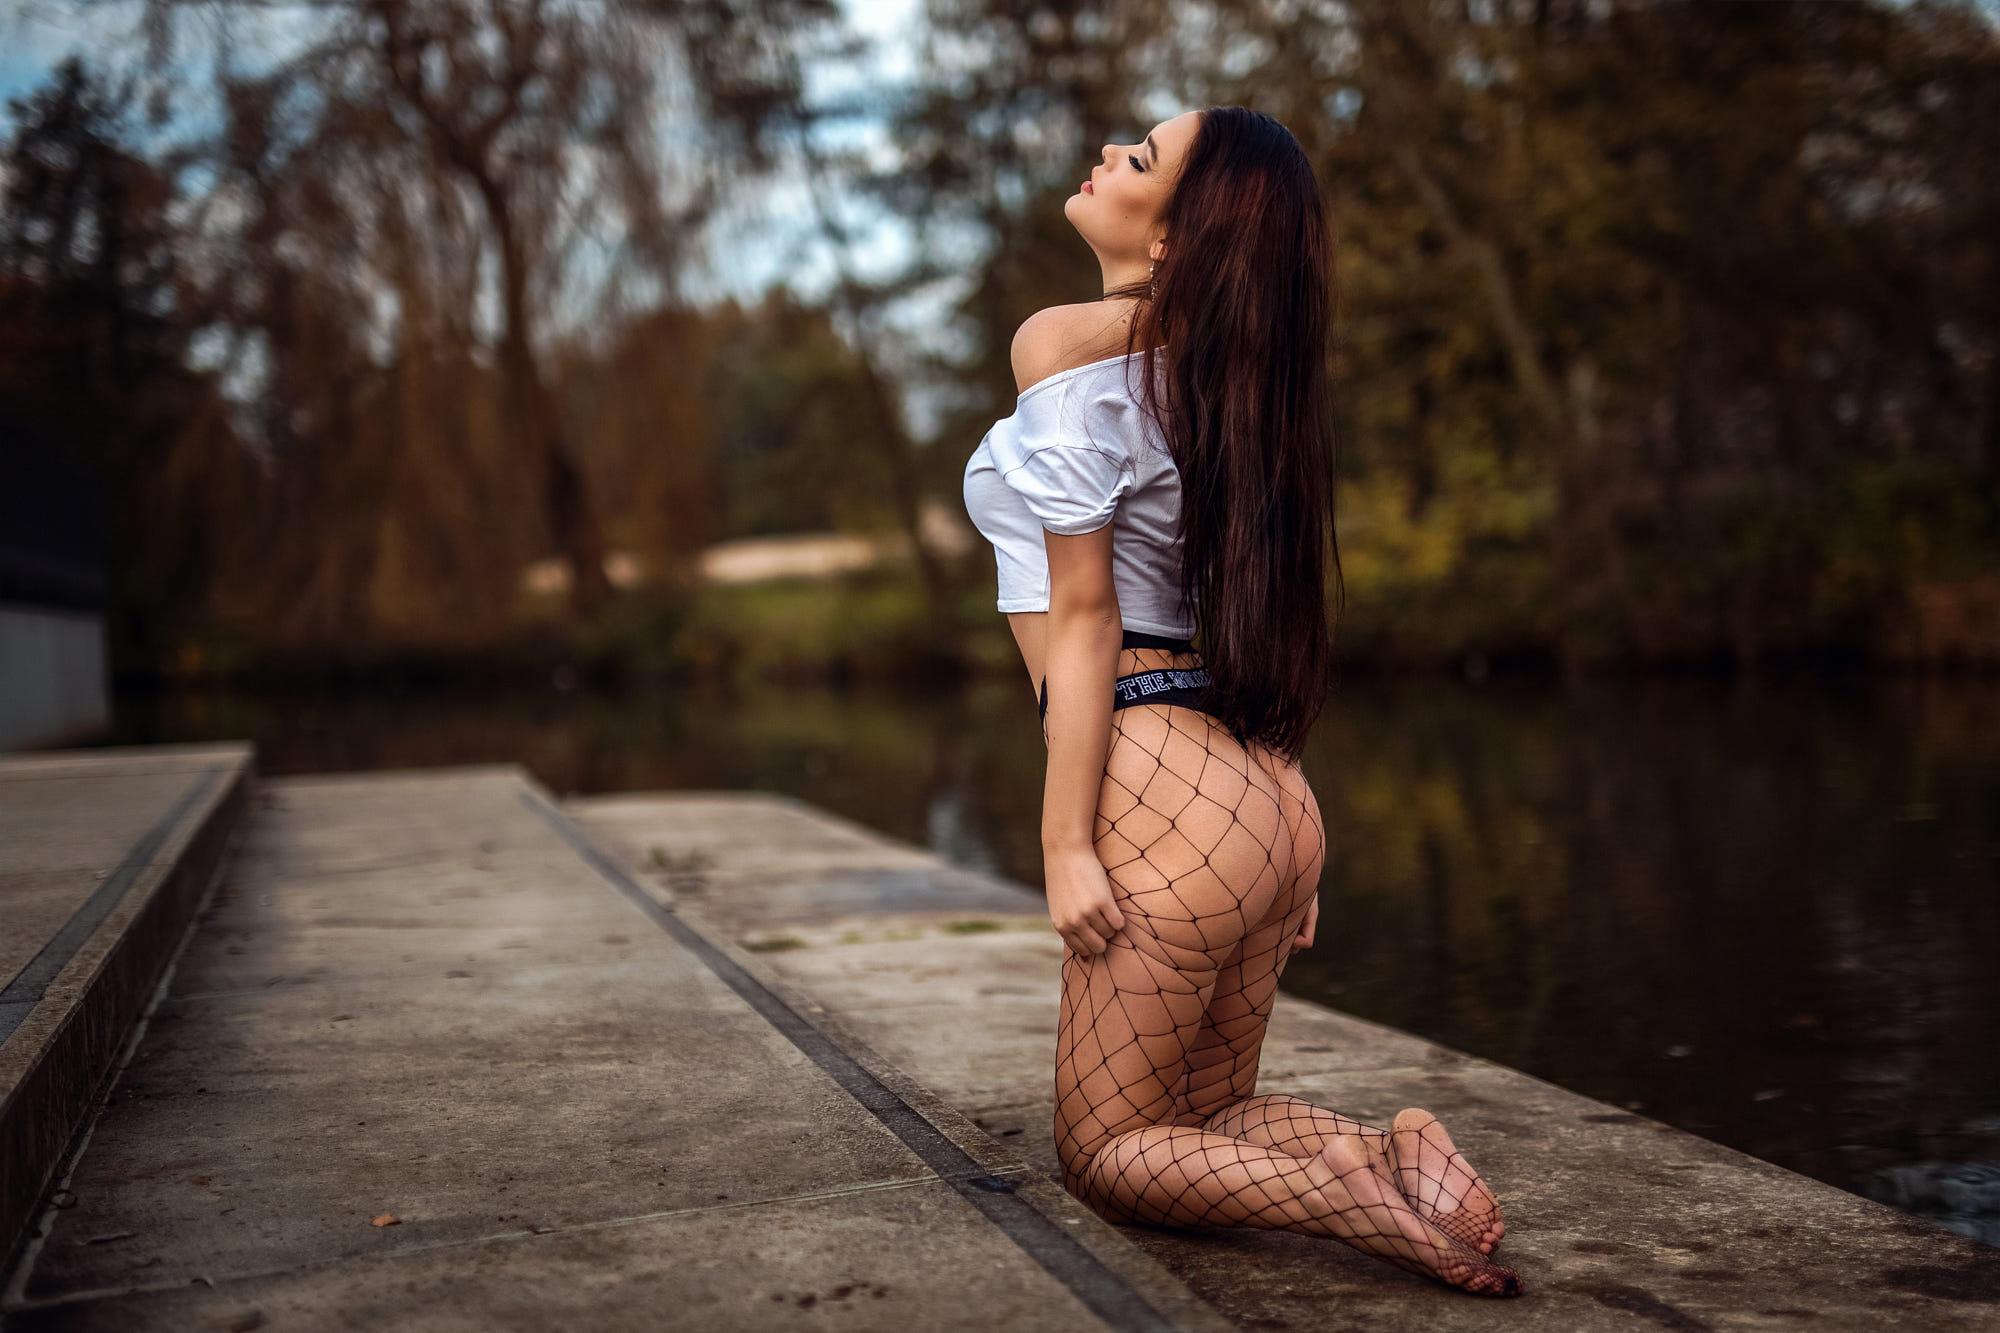 People 2000x1333 women brunette women outdoors stairs long hair closed eyes short tops black panties underwear barefoot thong ass no bra kneeling pantyhose tanned fishnet pond Özgür-Media